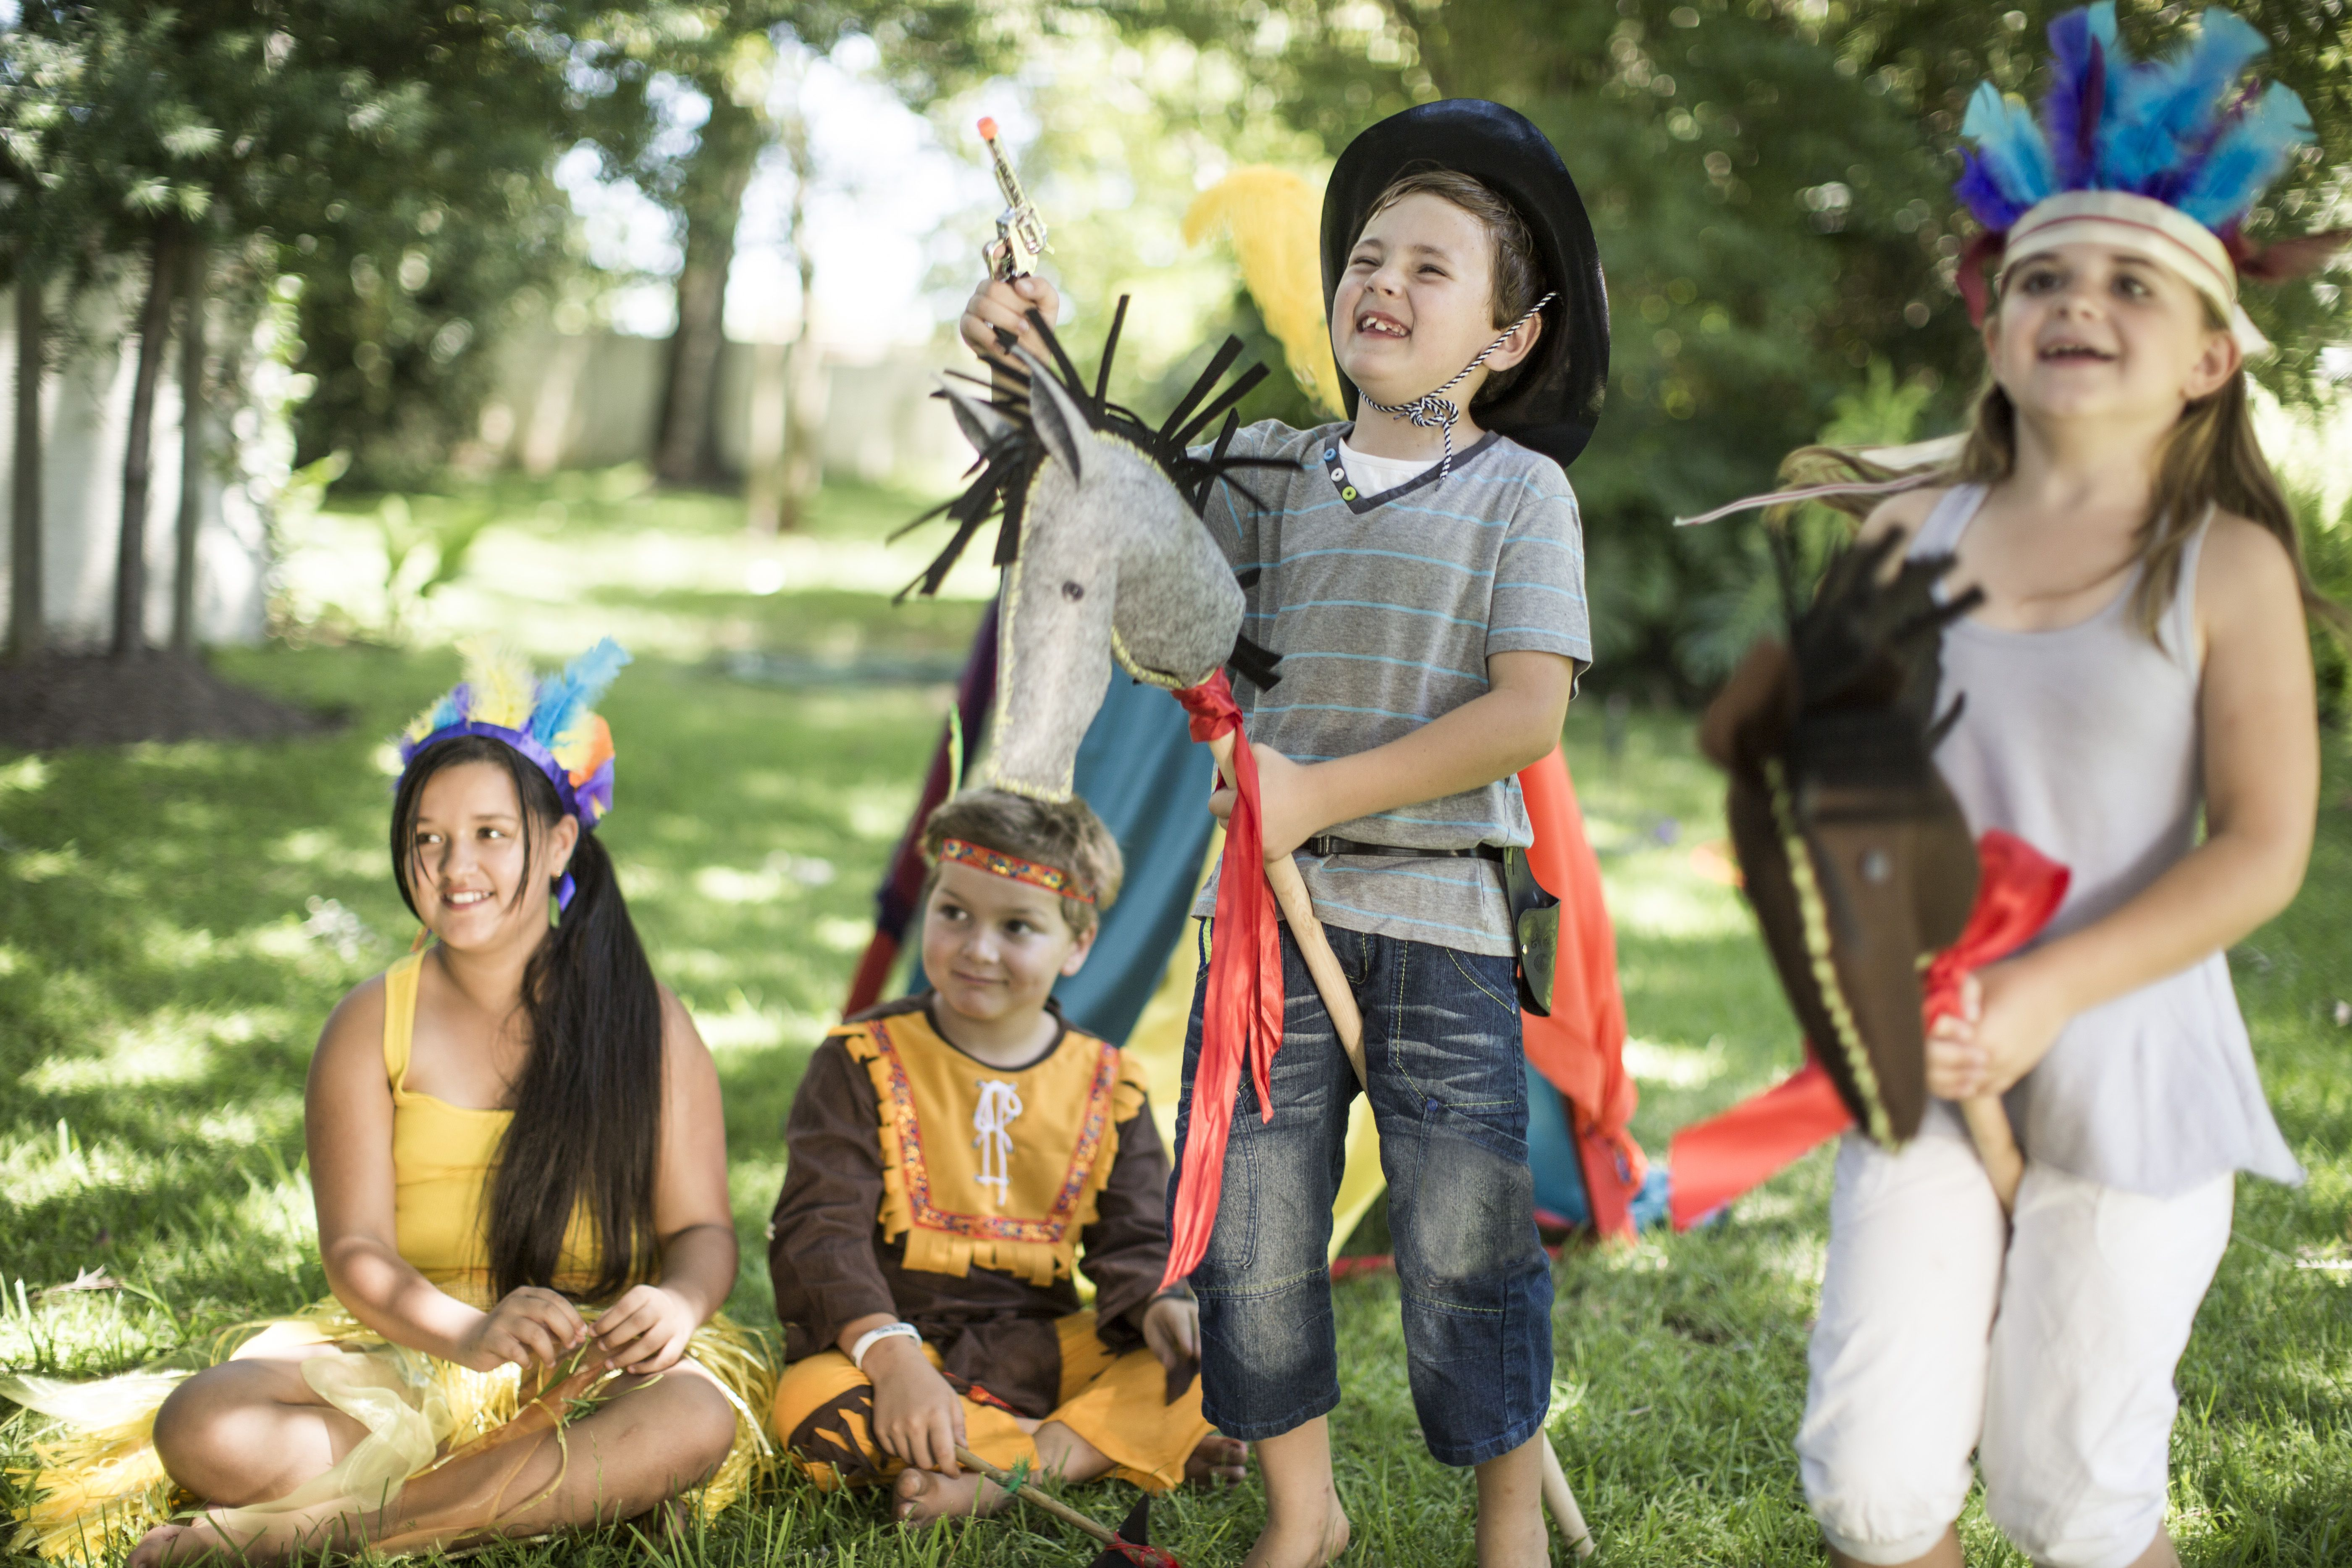 Pin By Interior Designer In A Box On Kids Teenager: 13 Cowboy Party Games And Activities For Kids